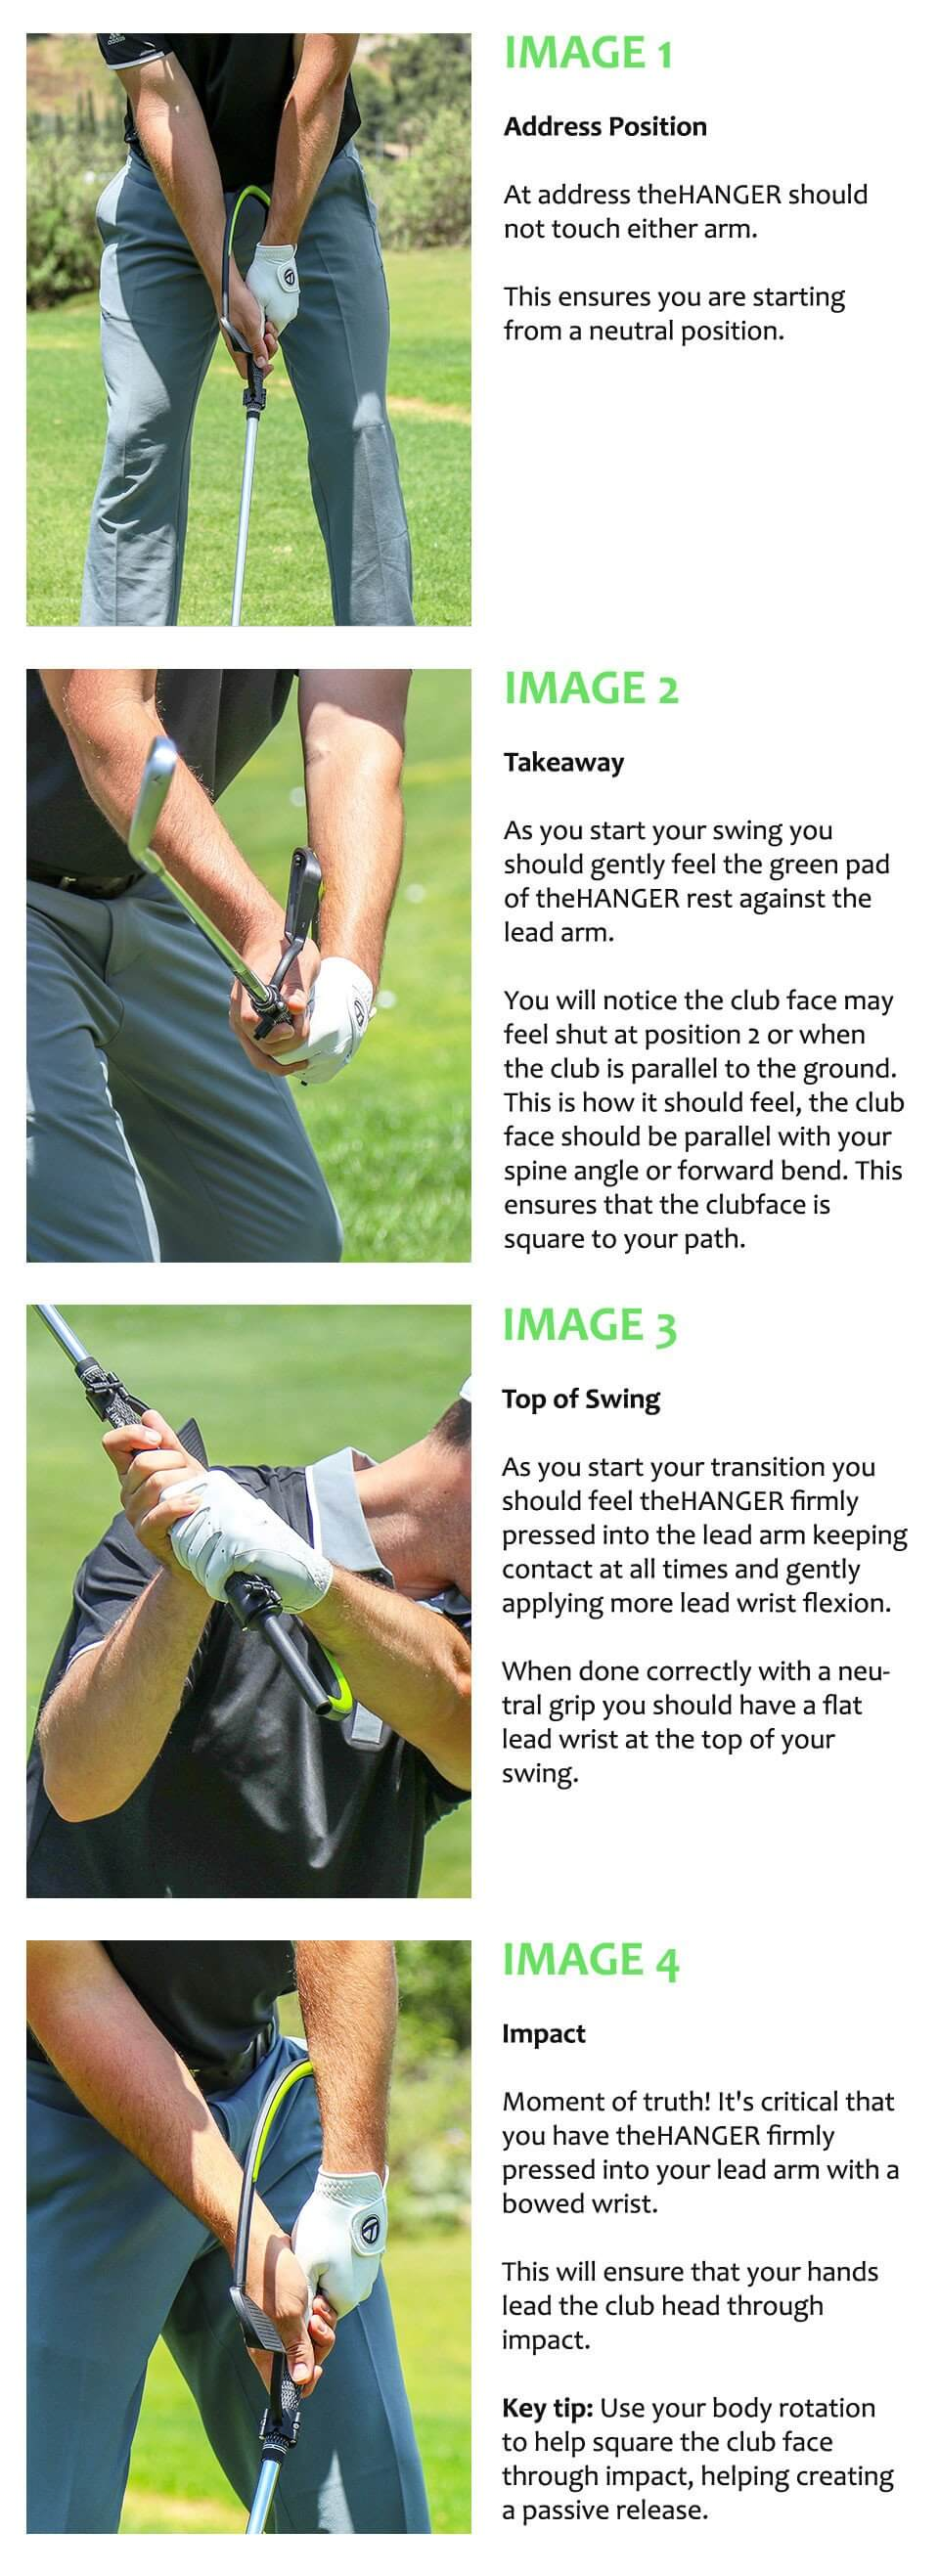 The Hanger Golf Swing Aid